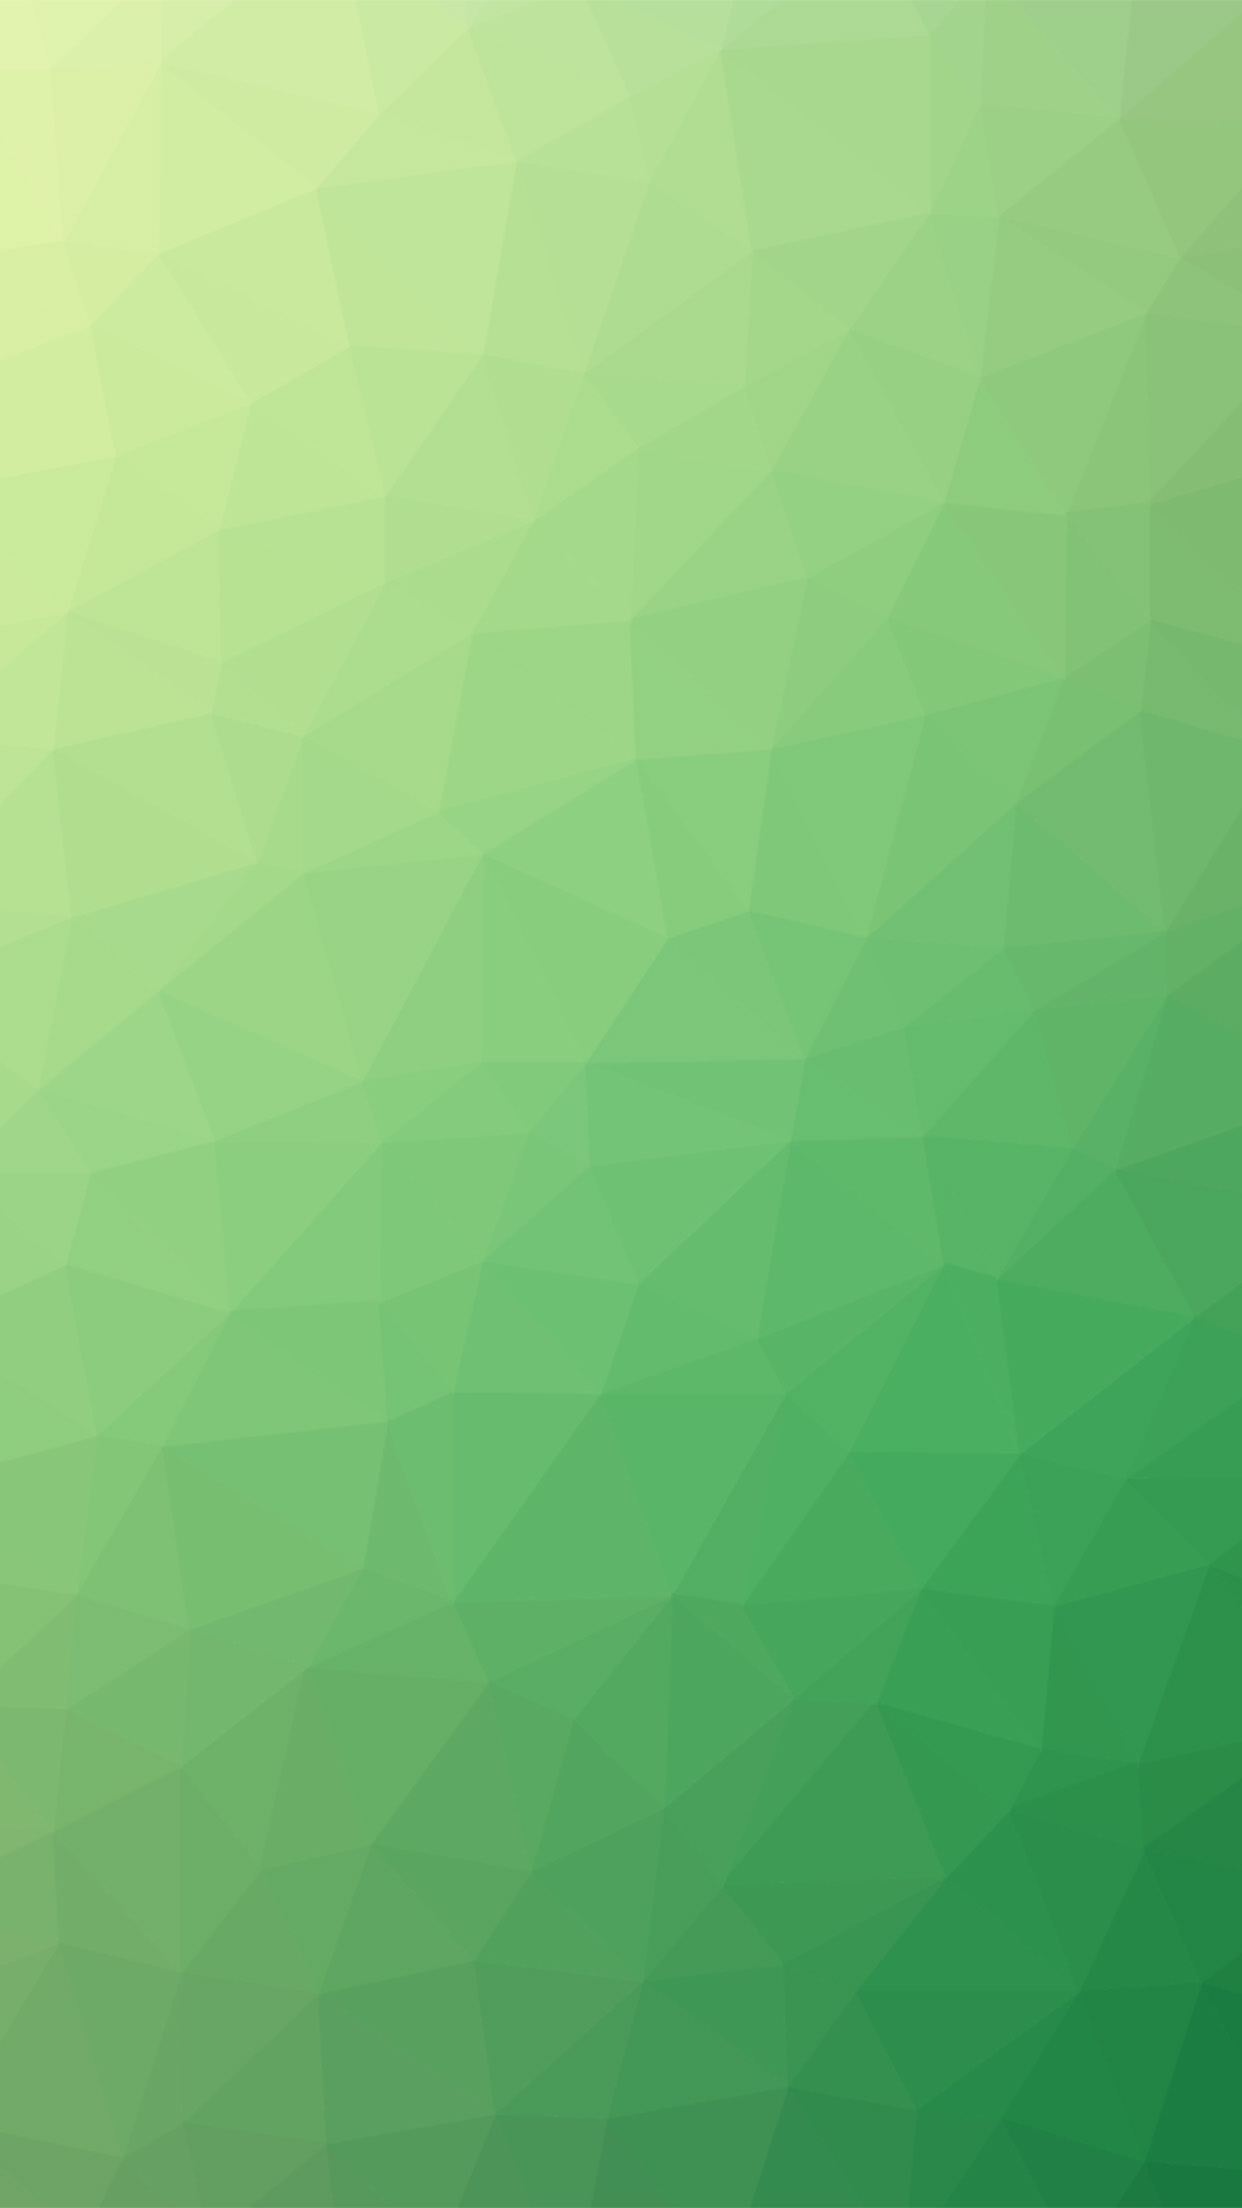 Poly Art Abstract Green Pattern Android wallpaper